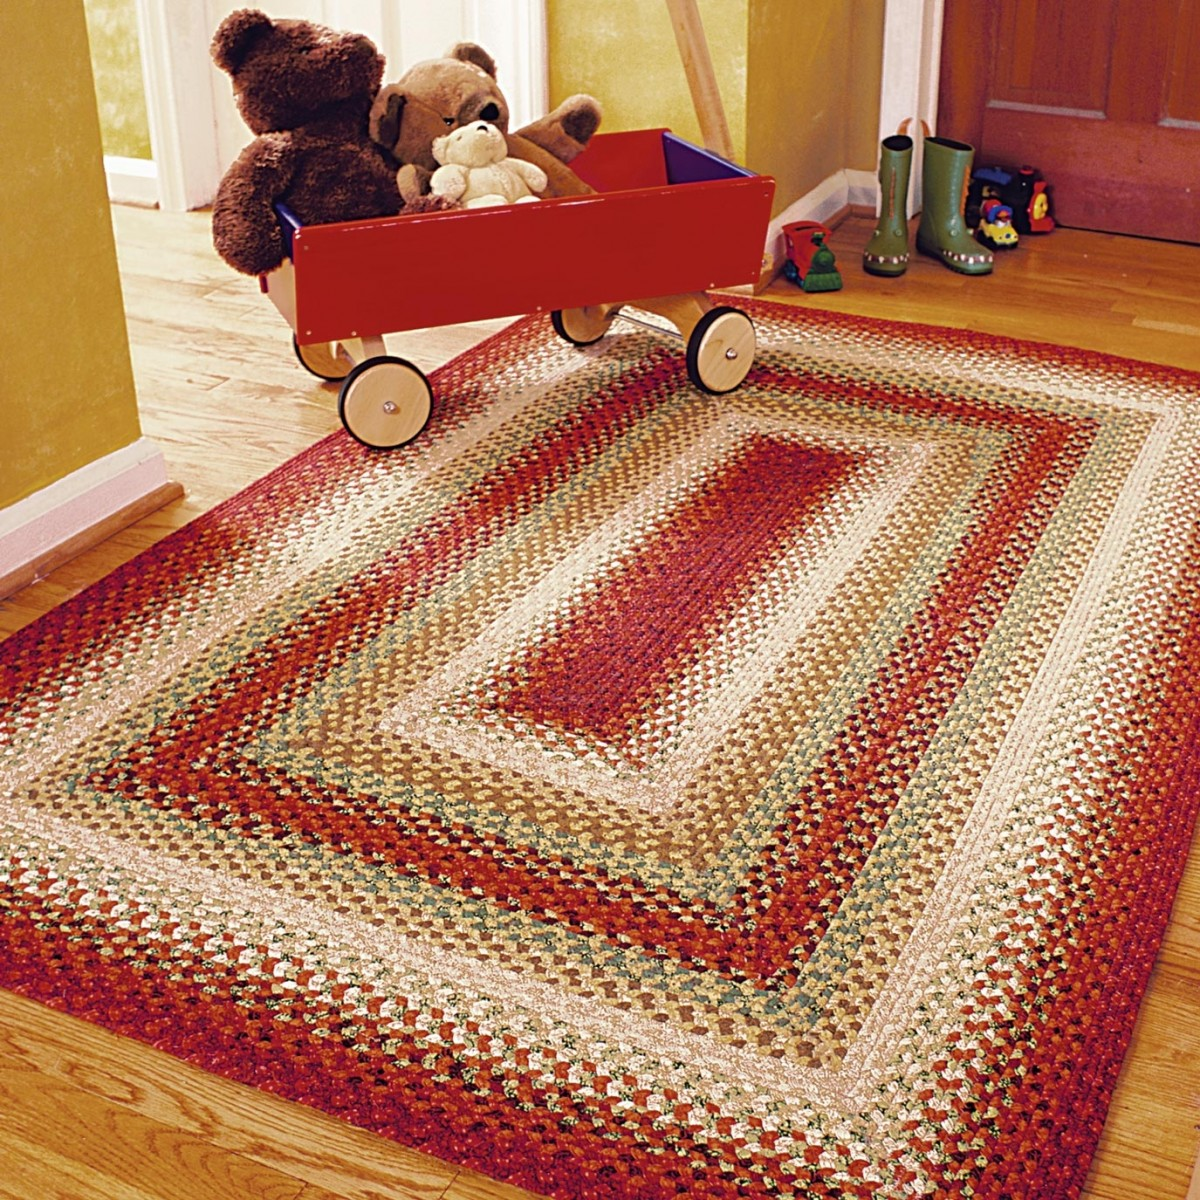 Rugs Santa Fe Ideas